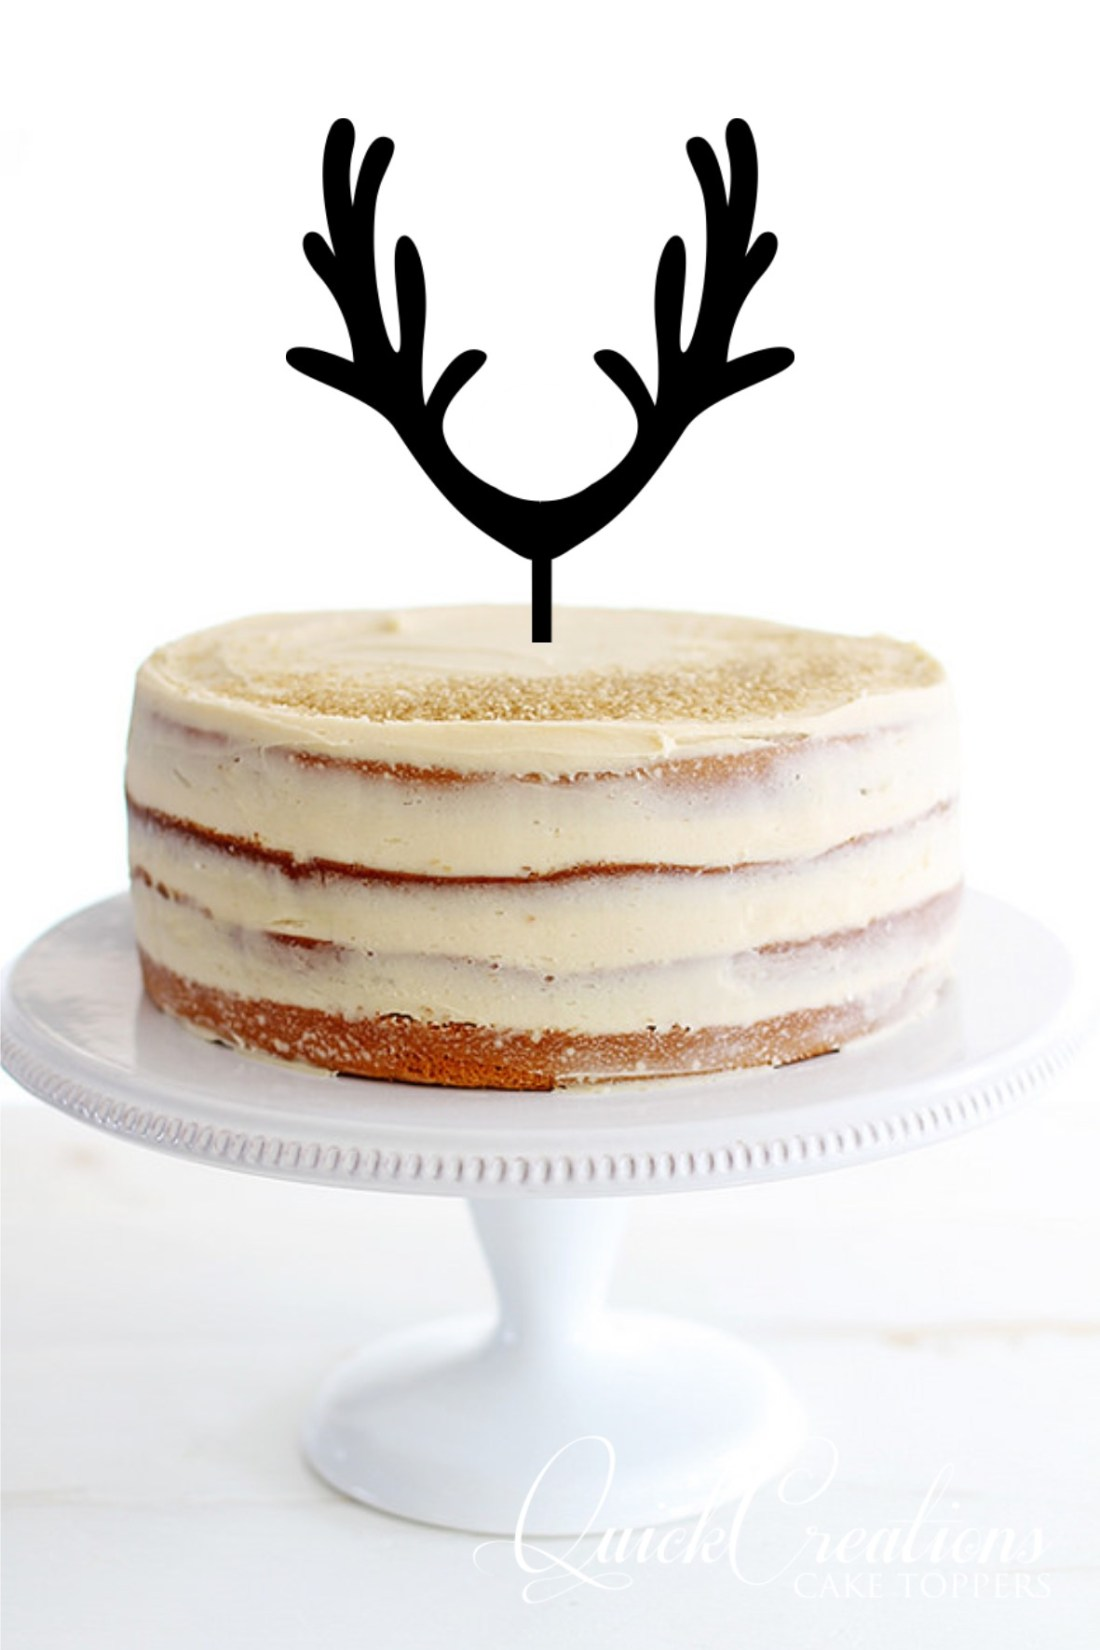 Quick Creations Cake Topper - Reindeer Antlers